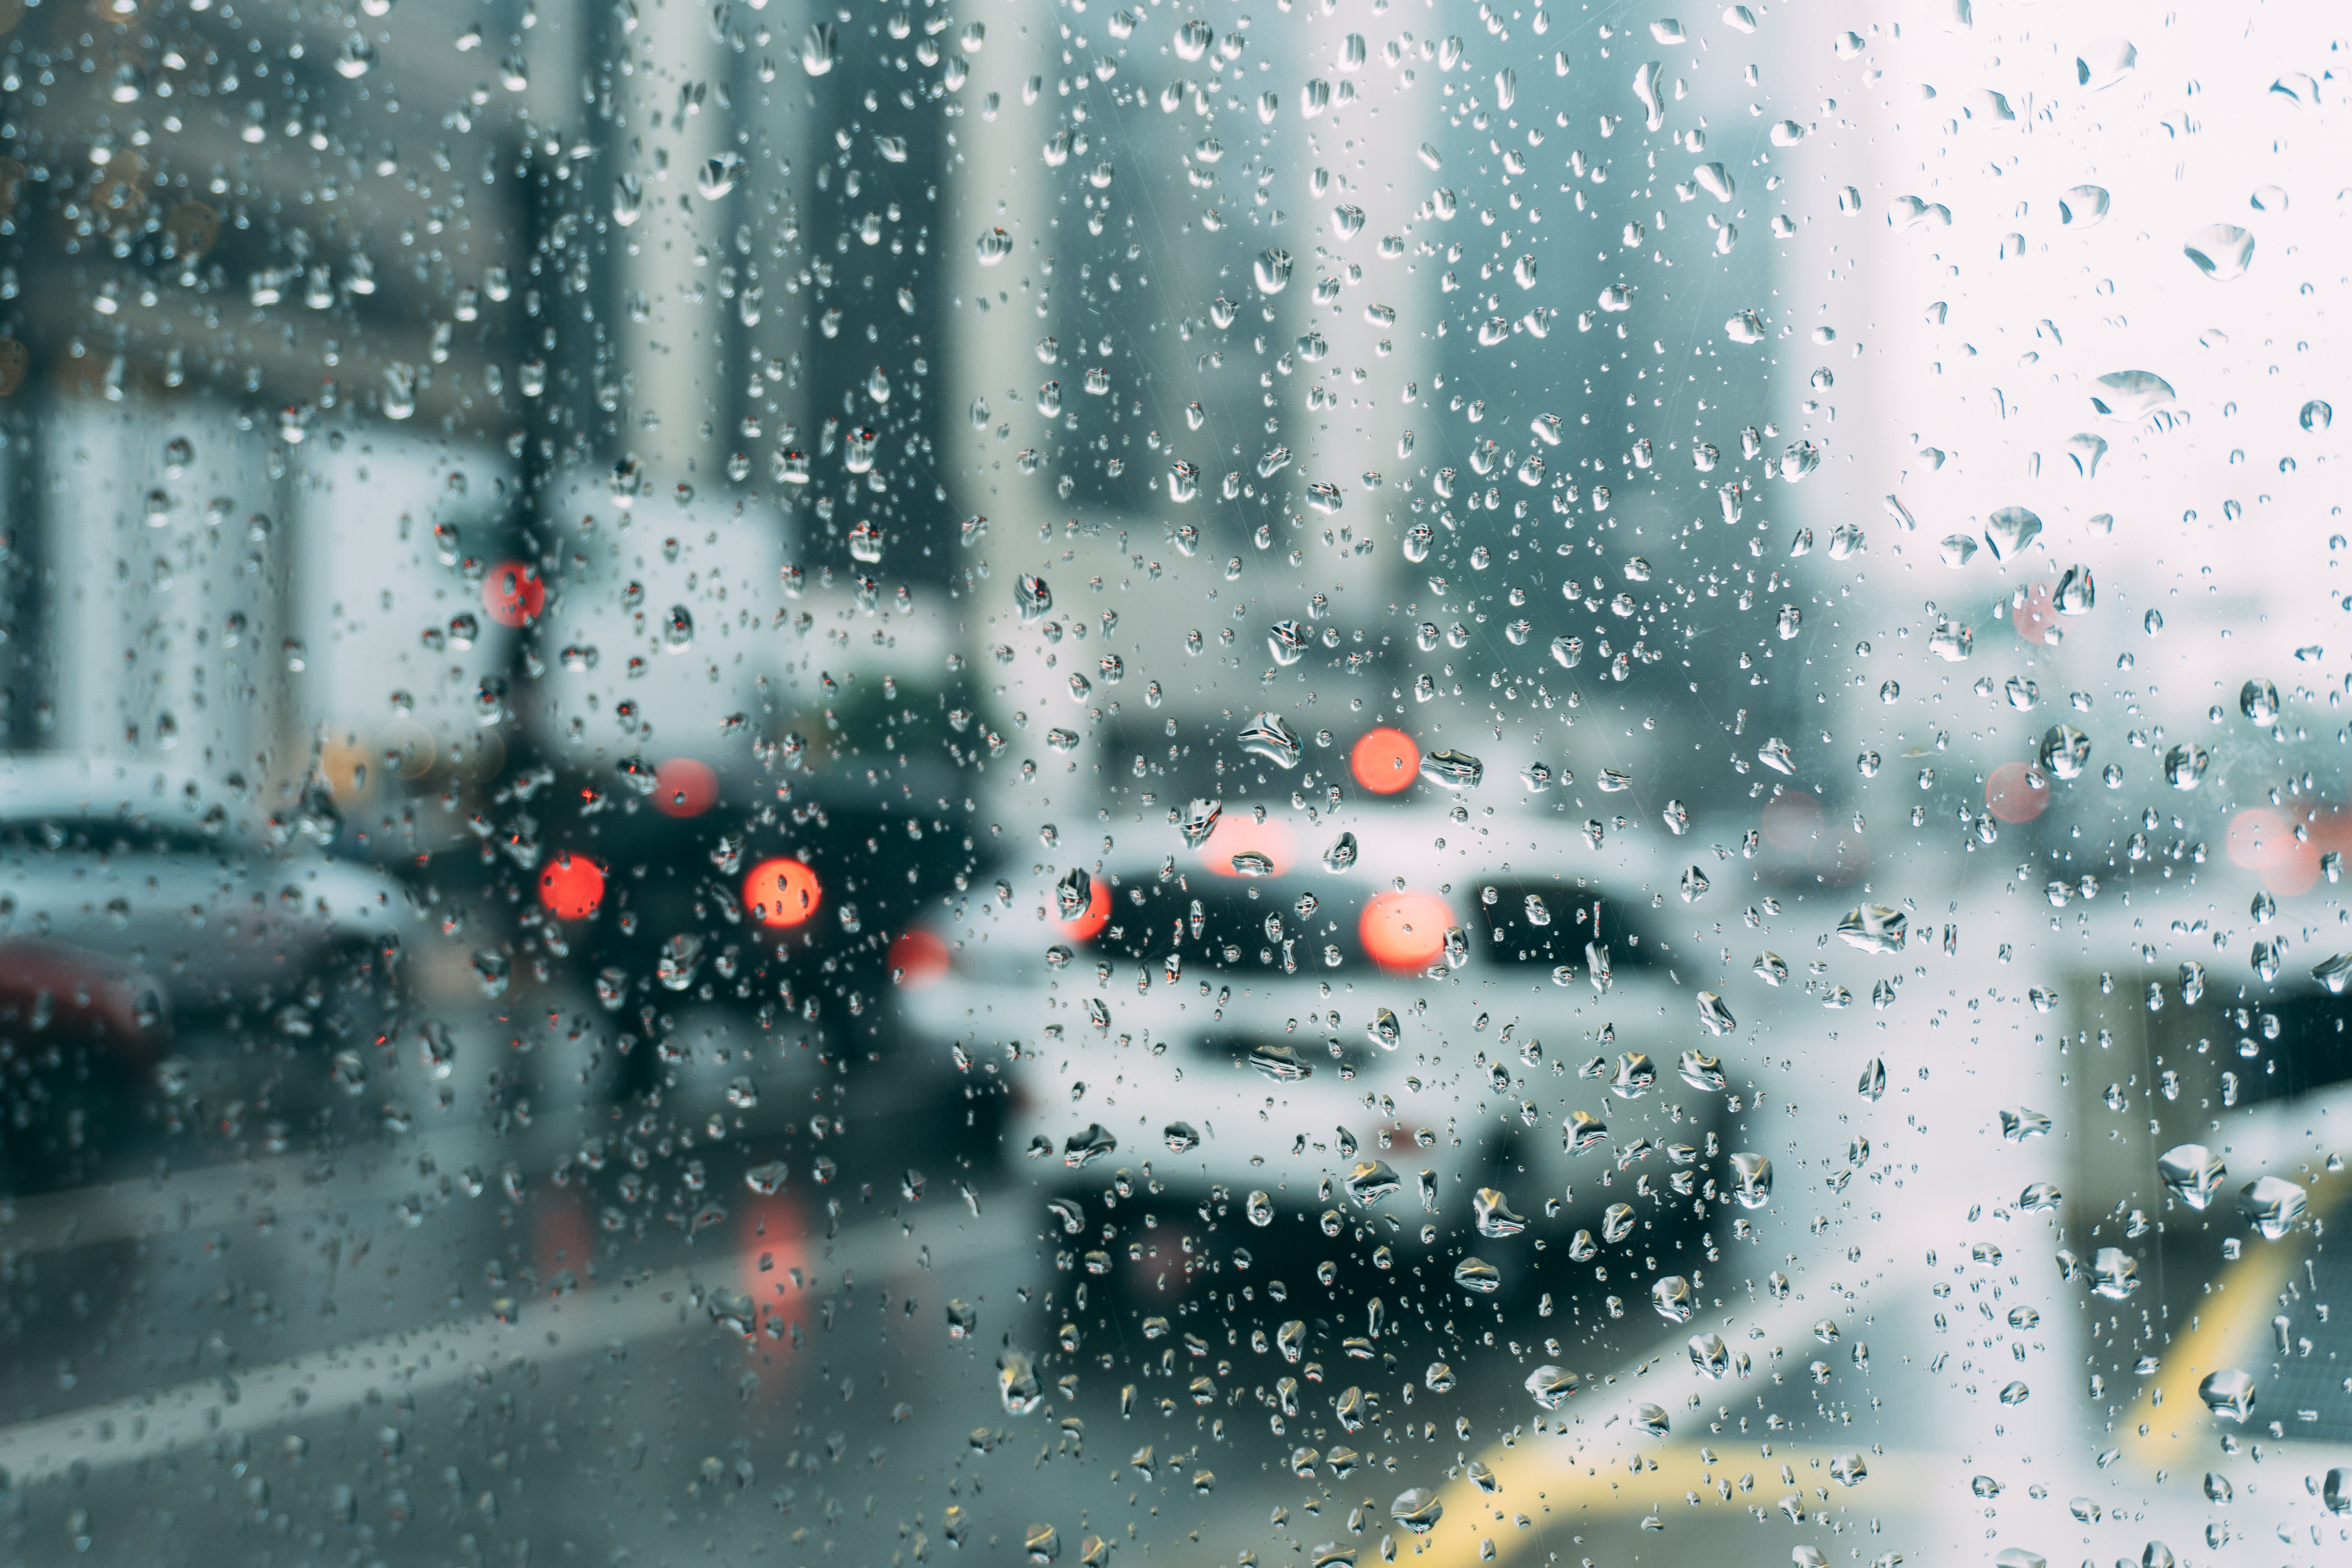 Driving Tips For Rainy Weather & Wet Roadways